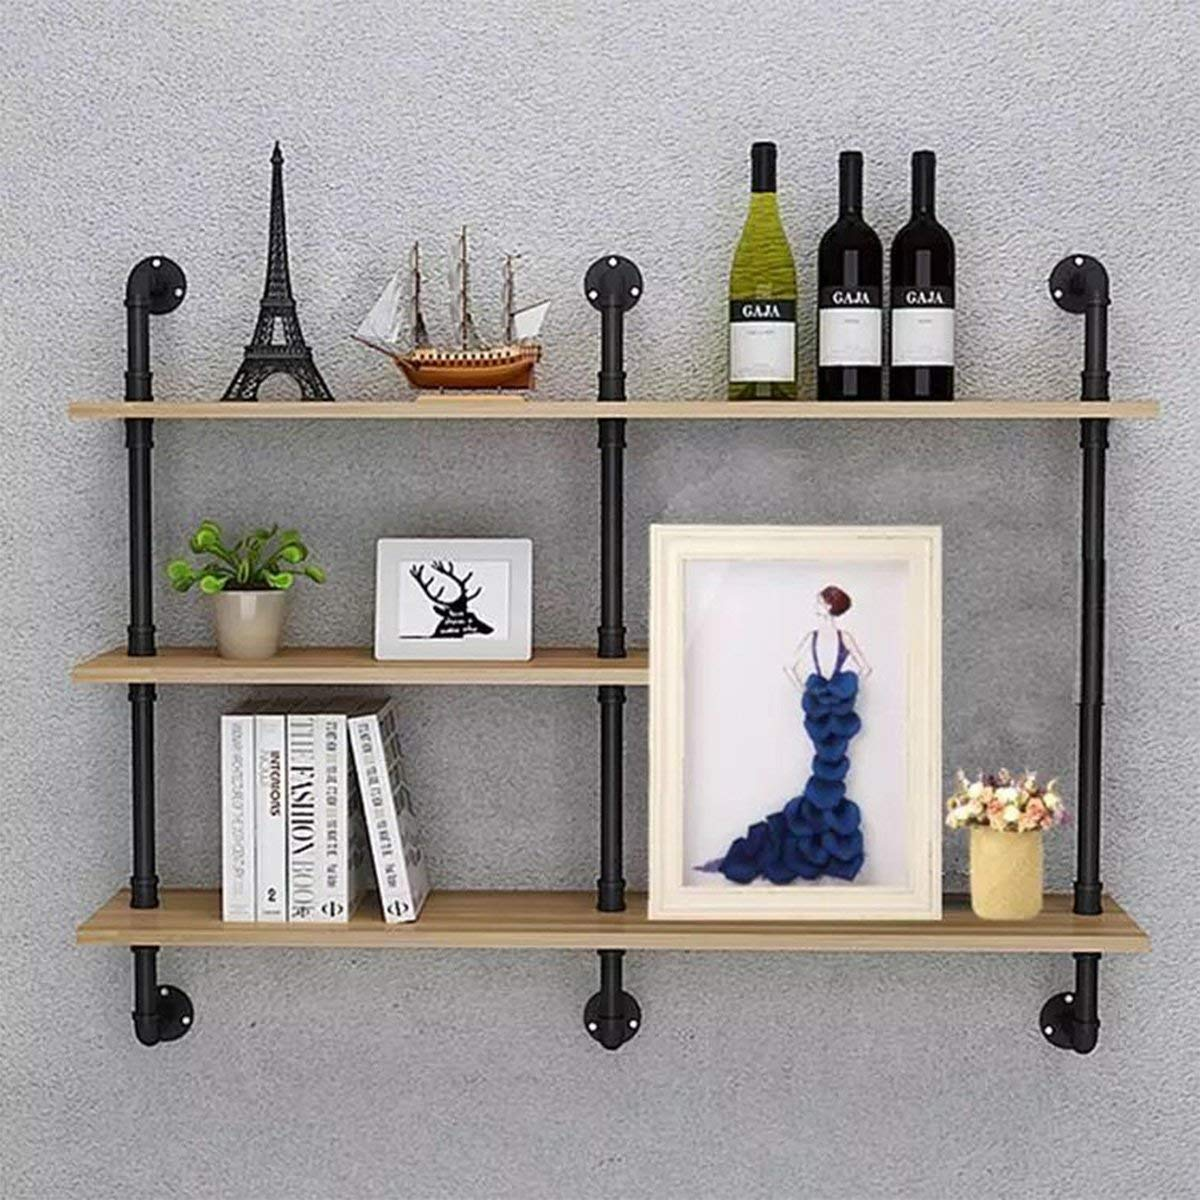 Cheap Rustic Pine Shelves Find Rustic Pine Shelves Deals On Line At